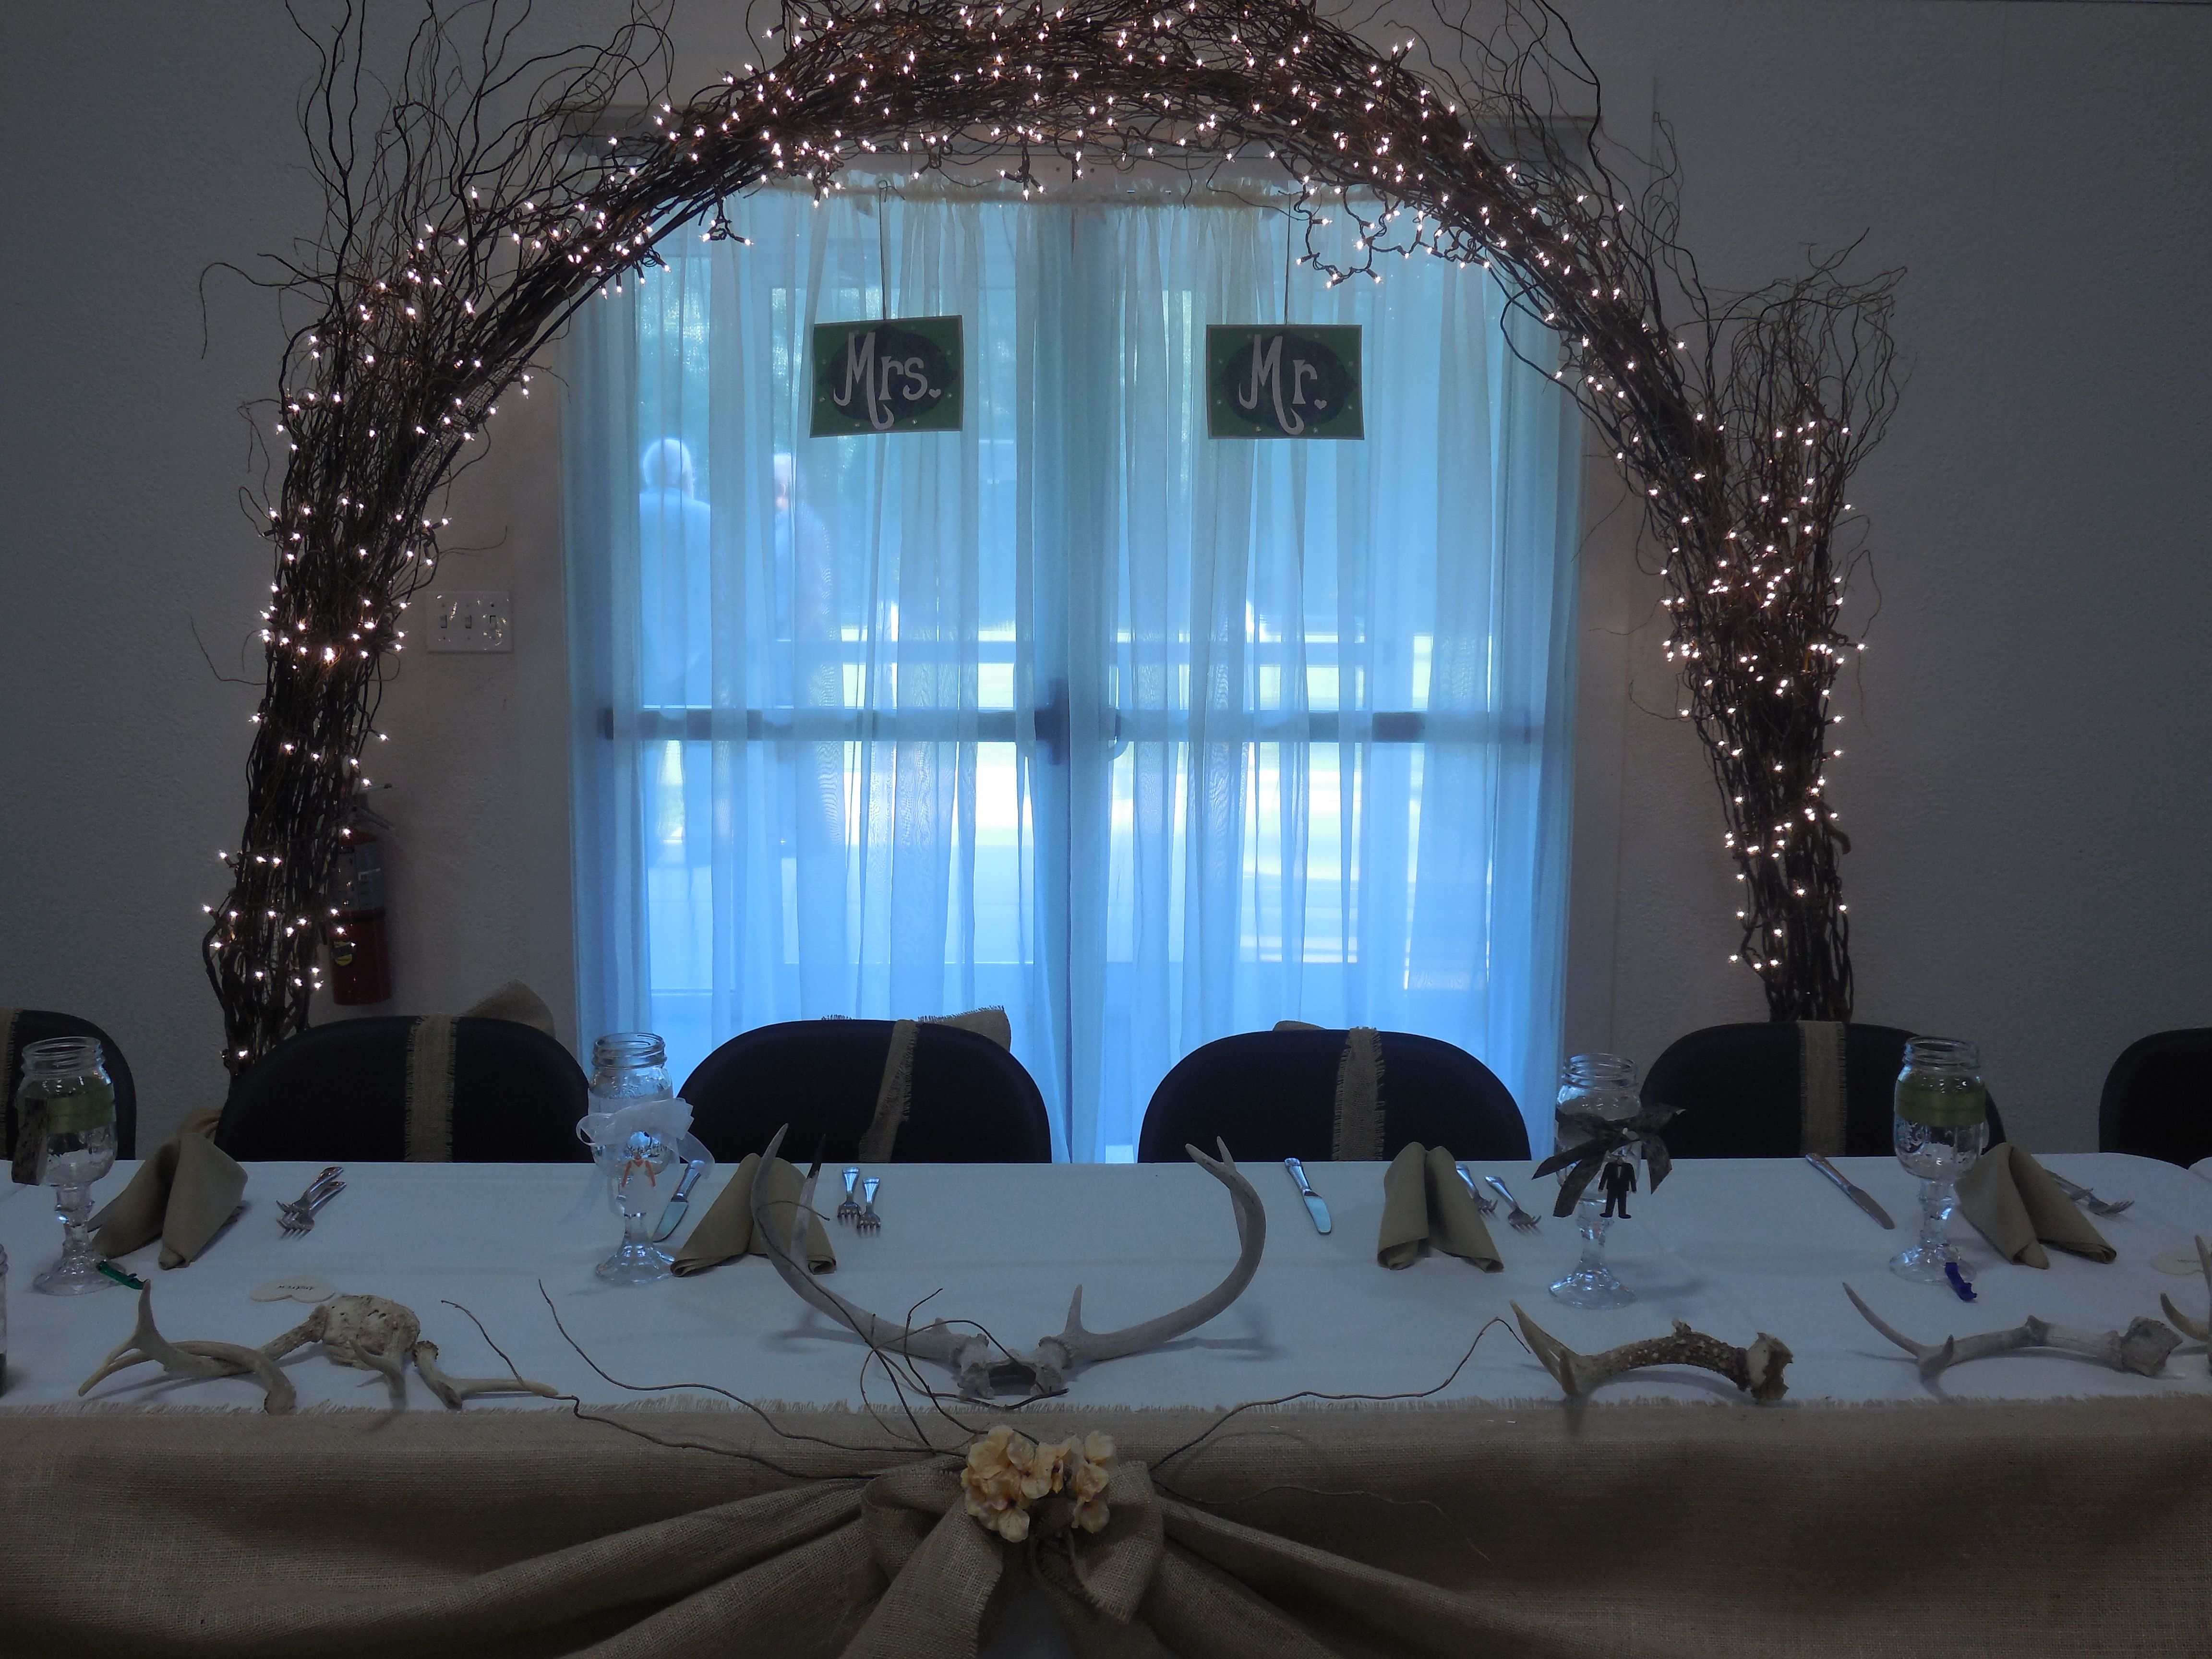 Lacoste Ling Wedding Wedding Projects 6 Head Table: Rustic Wedding Head Table With Antlers, Burlap Swag With